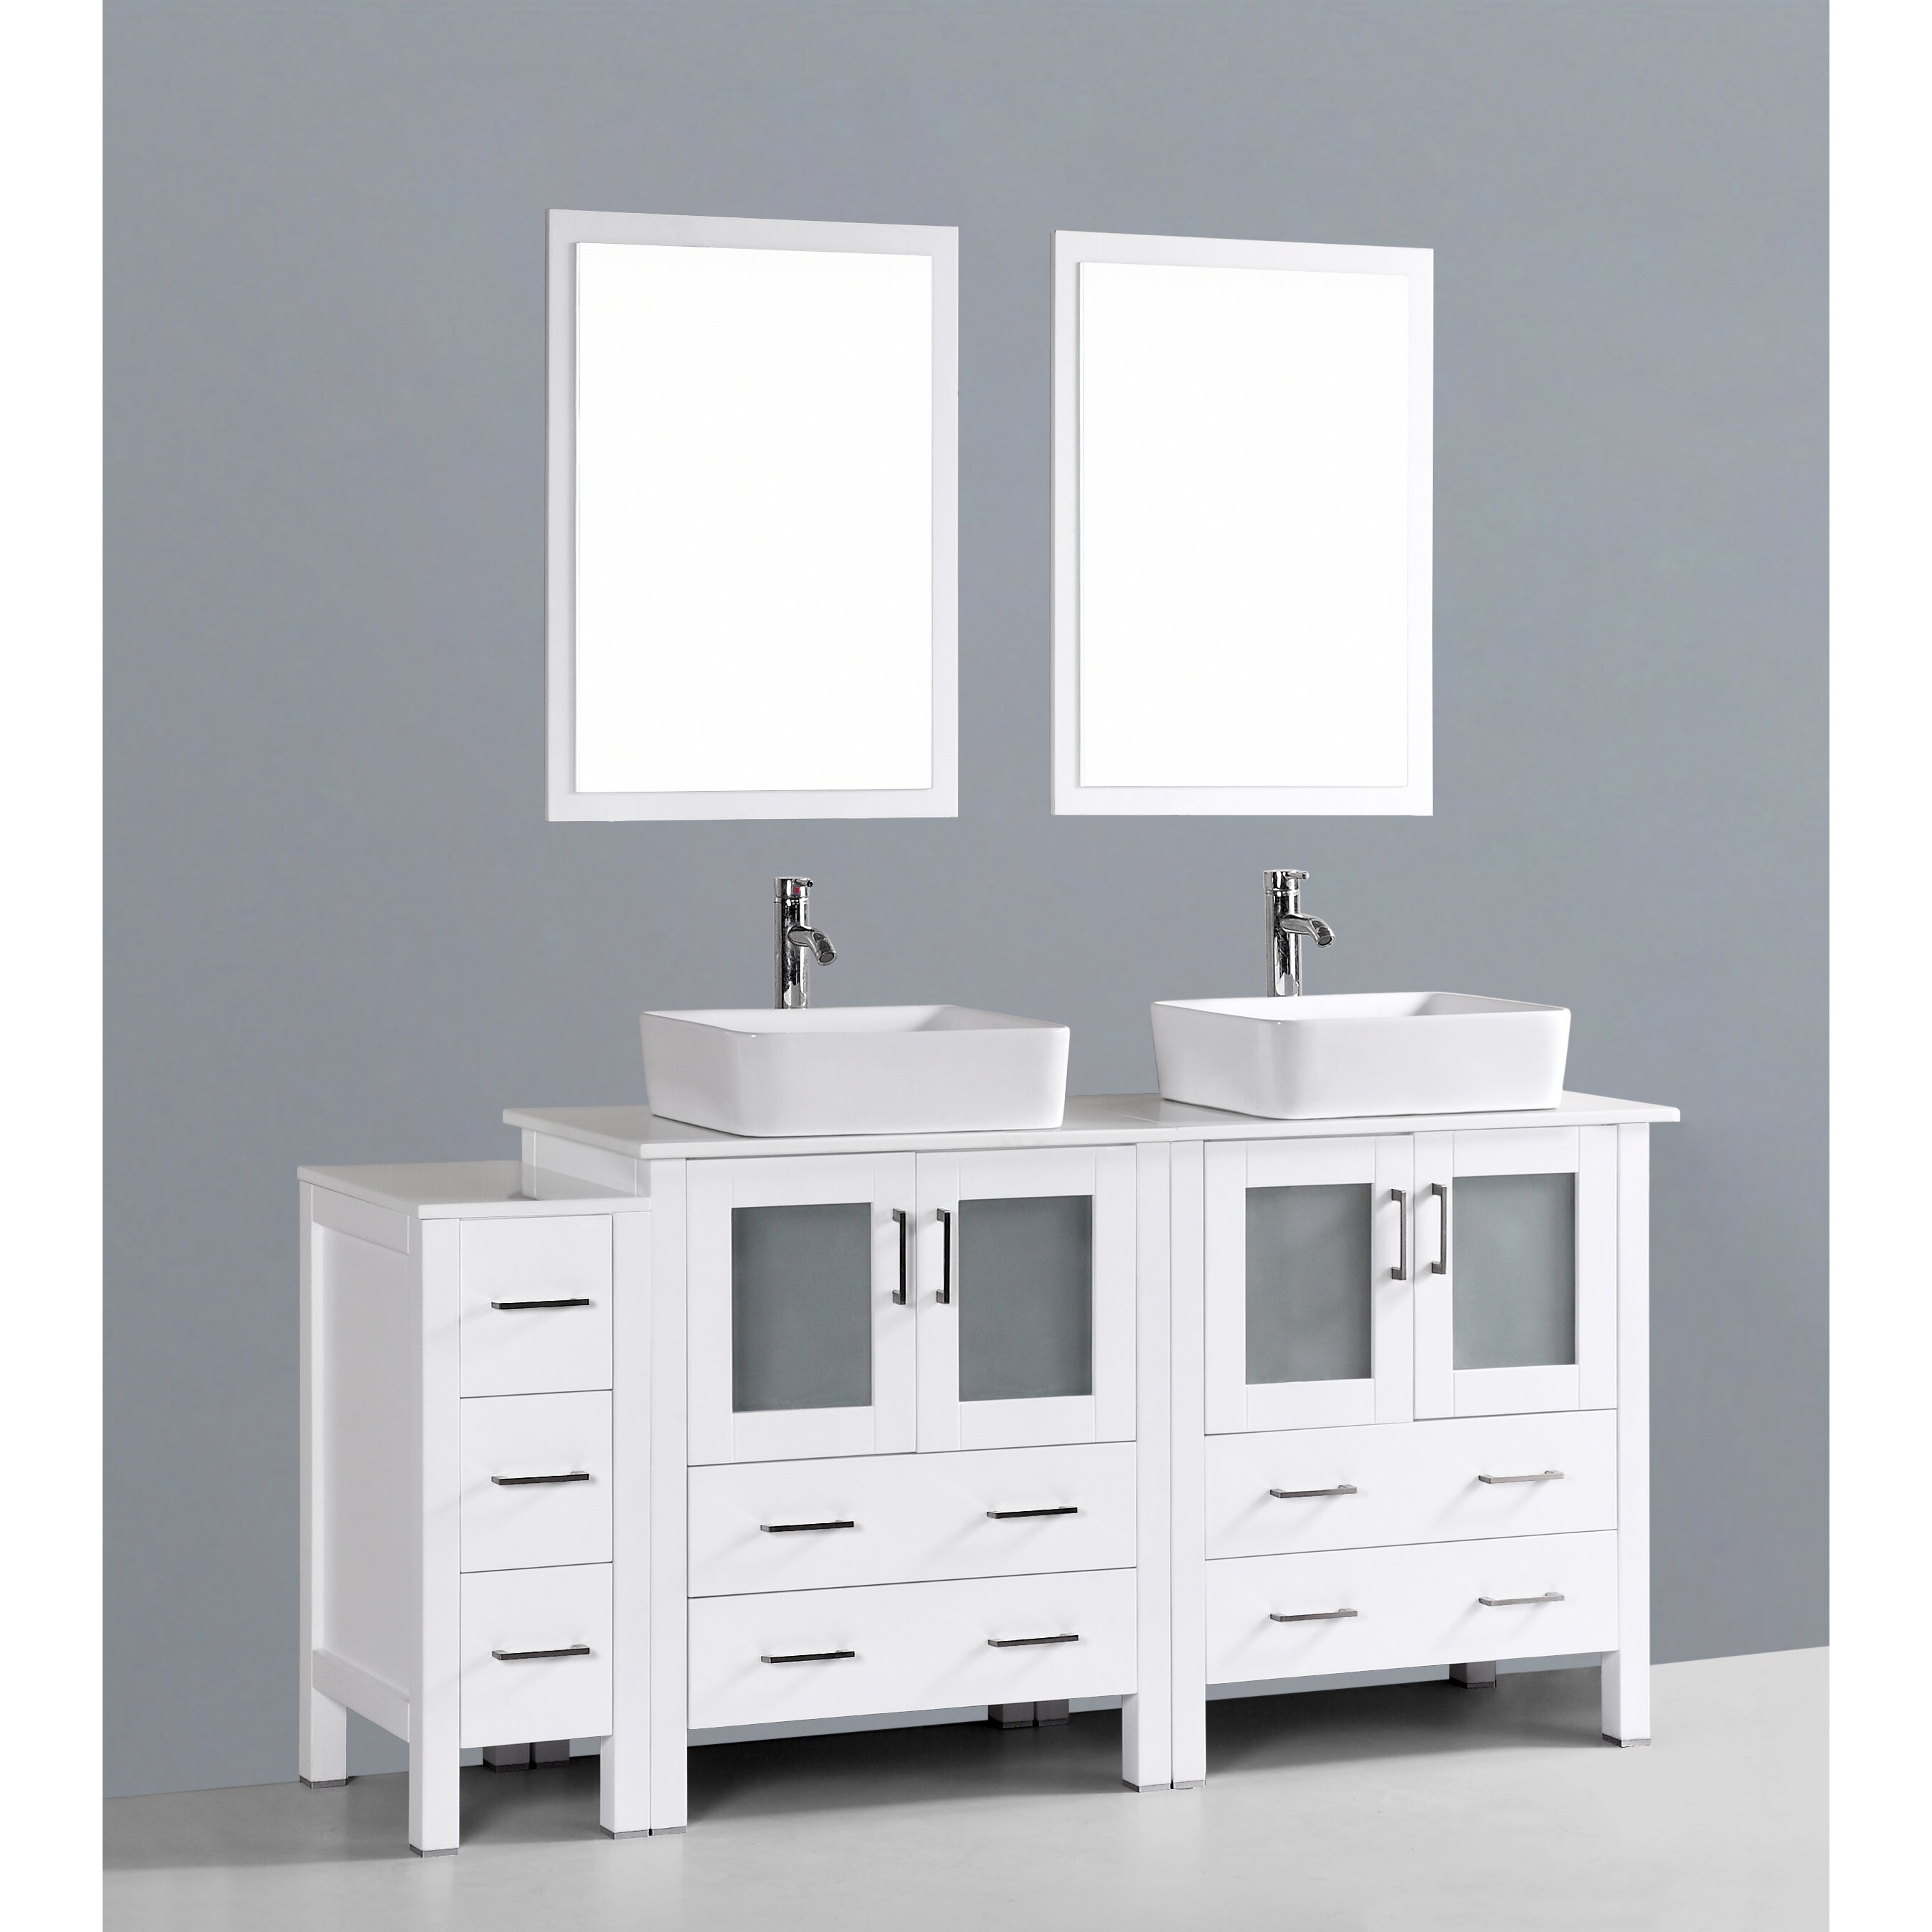 Bosconi contemporary 72 double bathroom vanity set with for Bath and vanity set